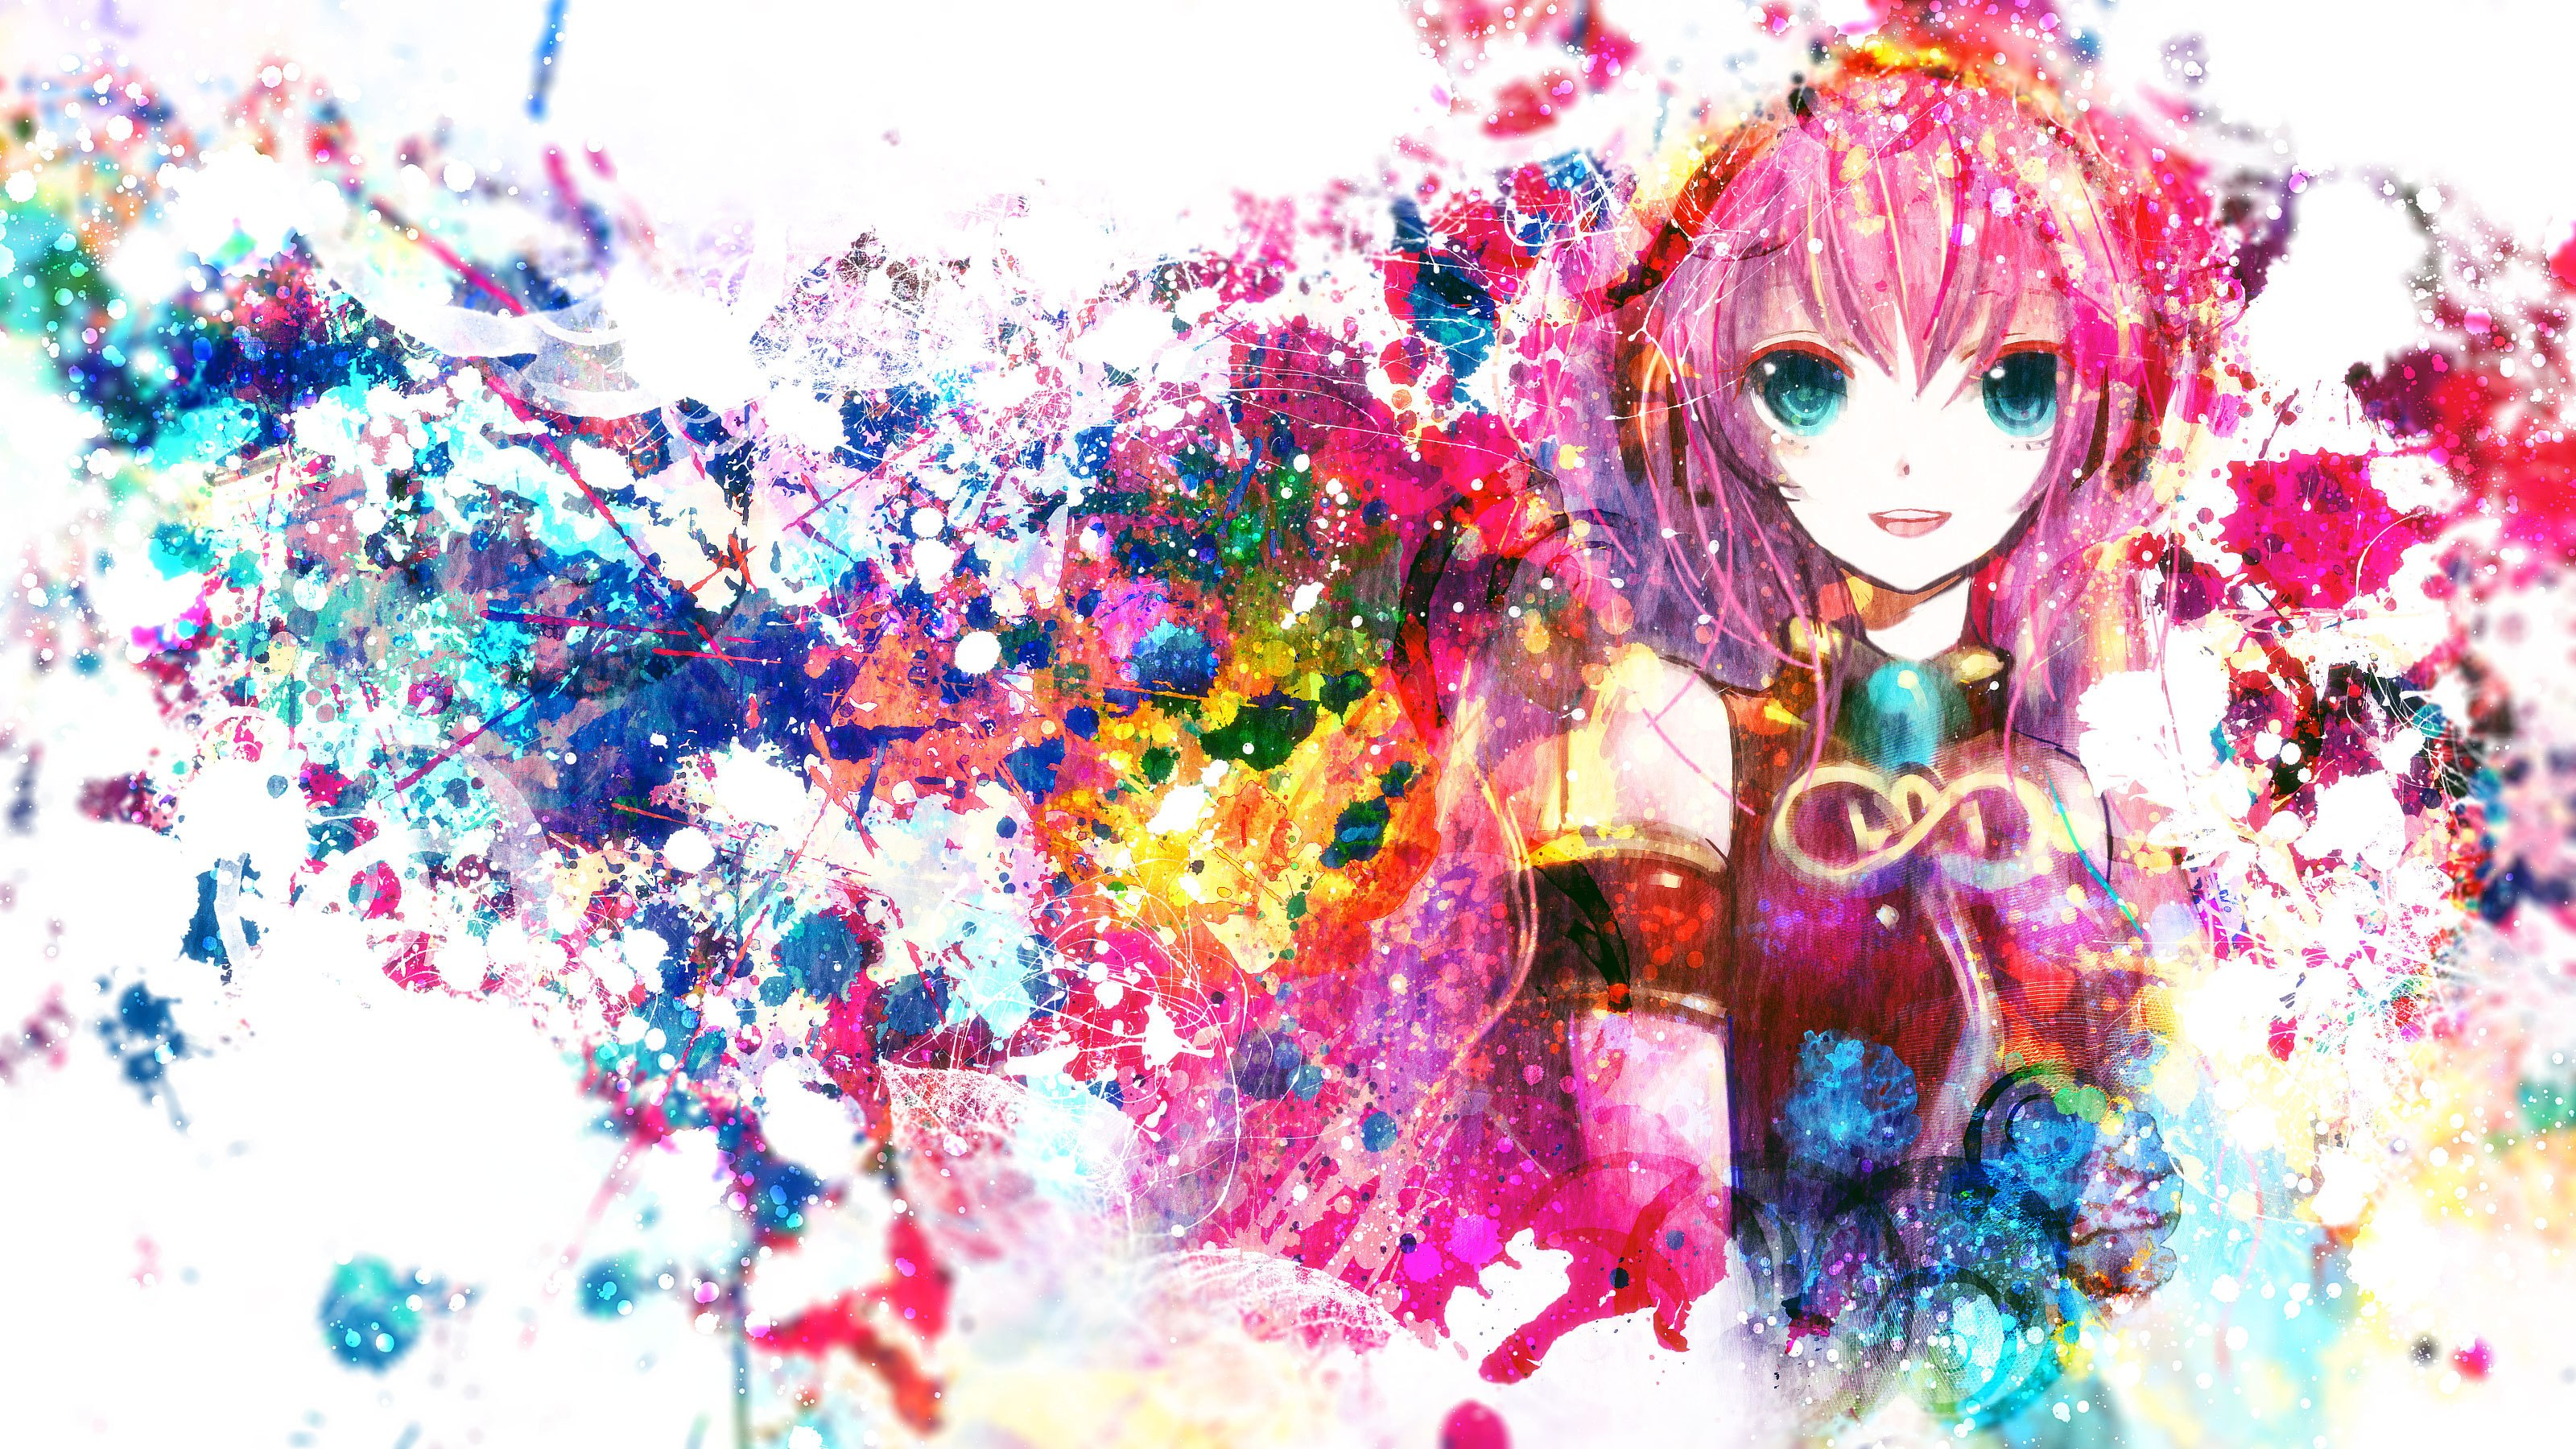 Fall Anime Wallpaper Vocaloid Free Vocaloid Wallpapers Download Pixelstalk Net